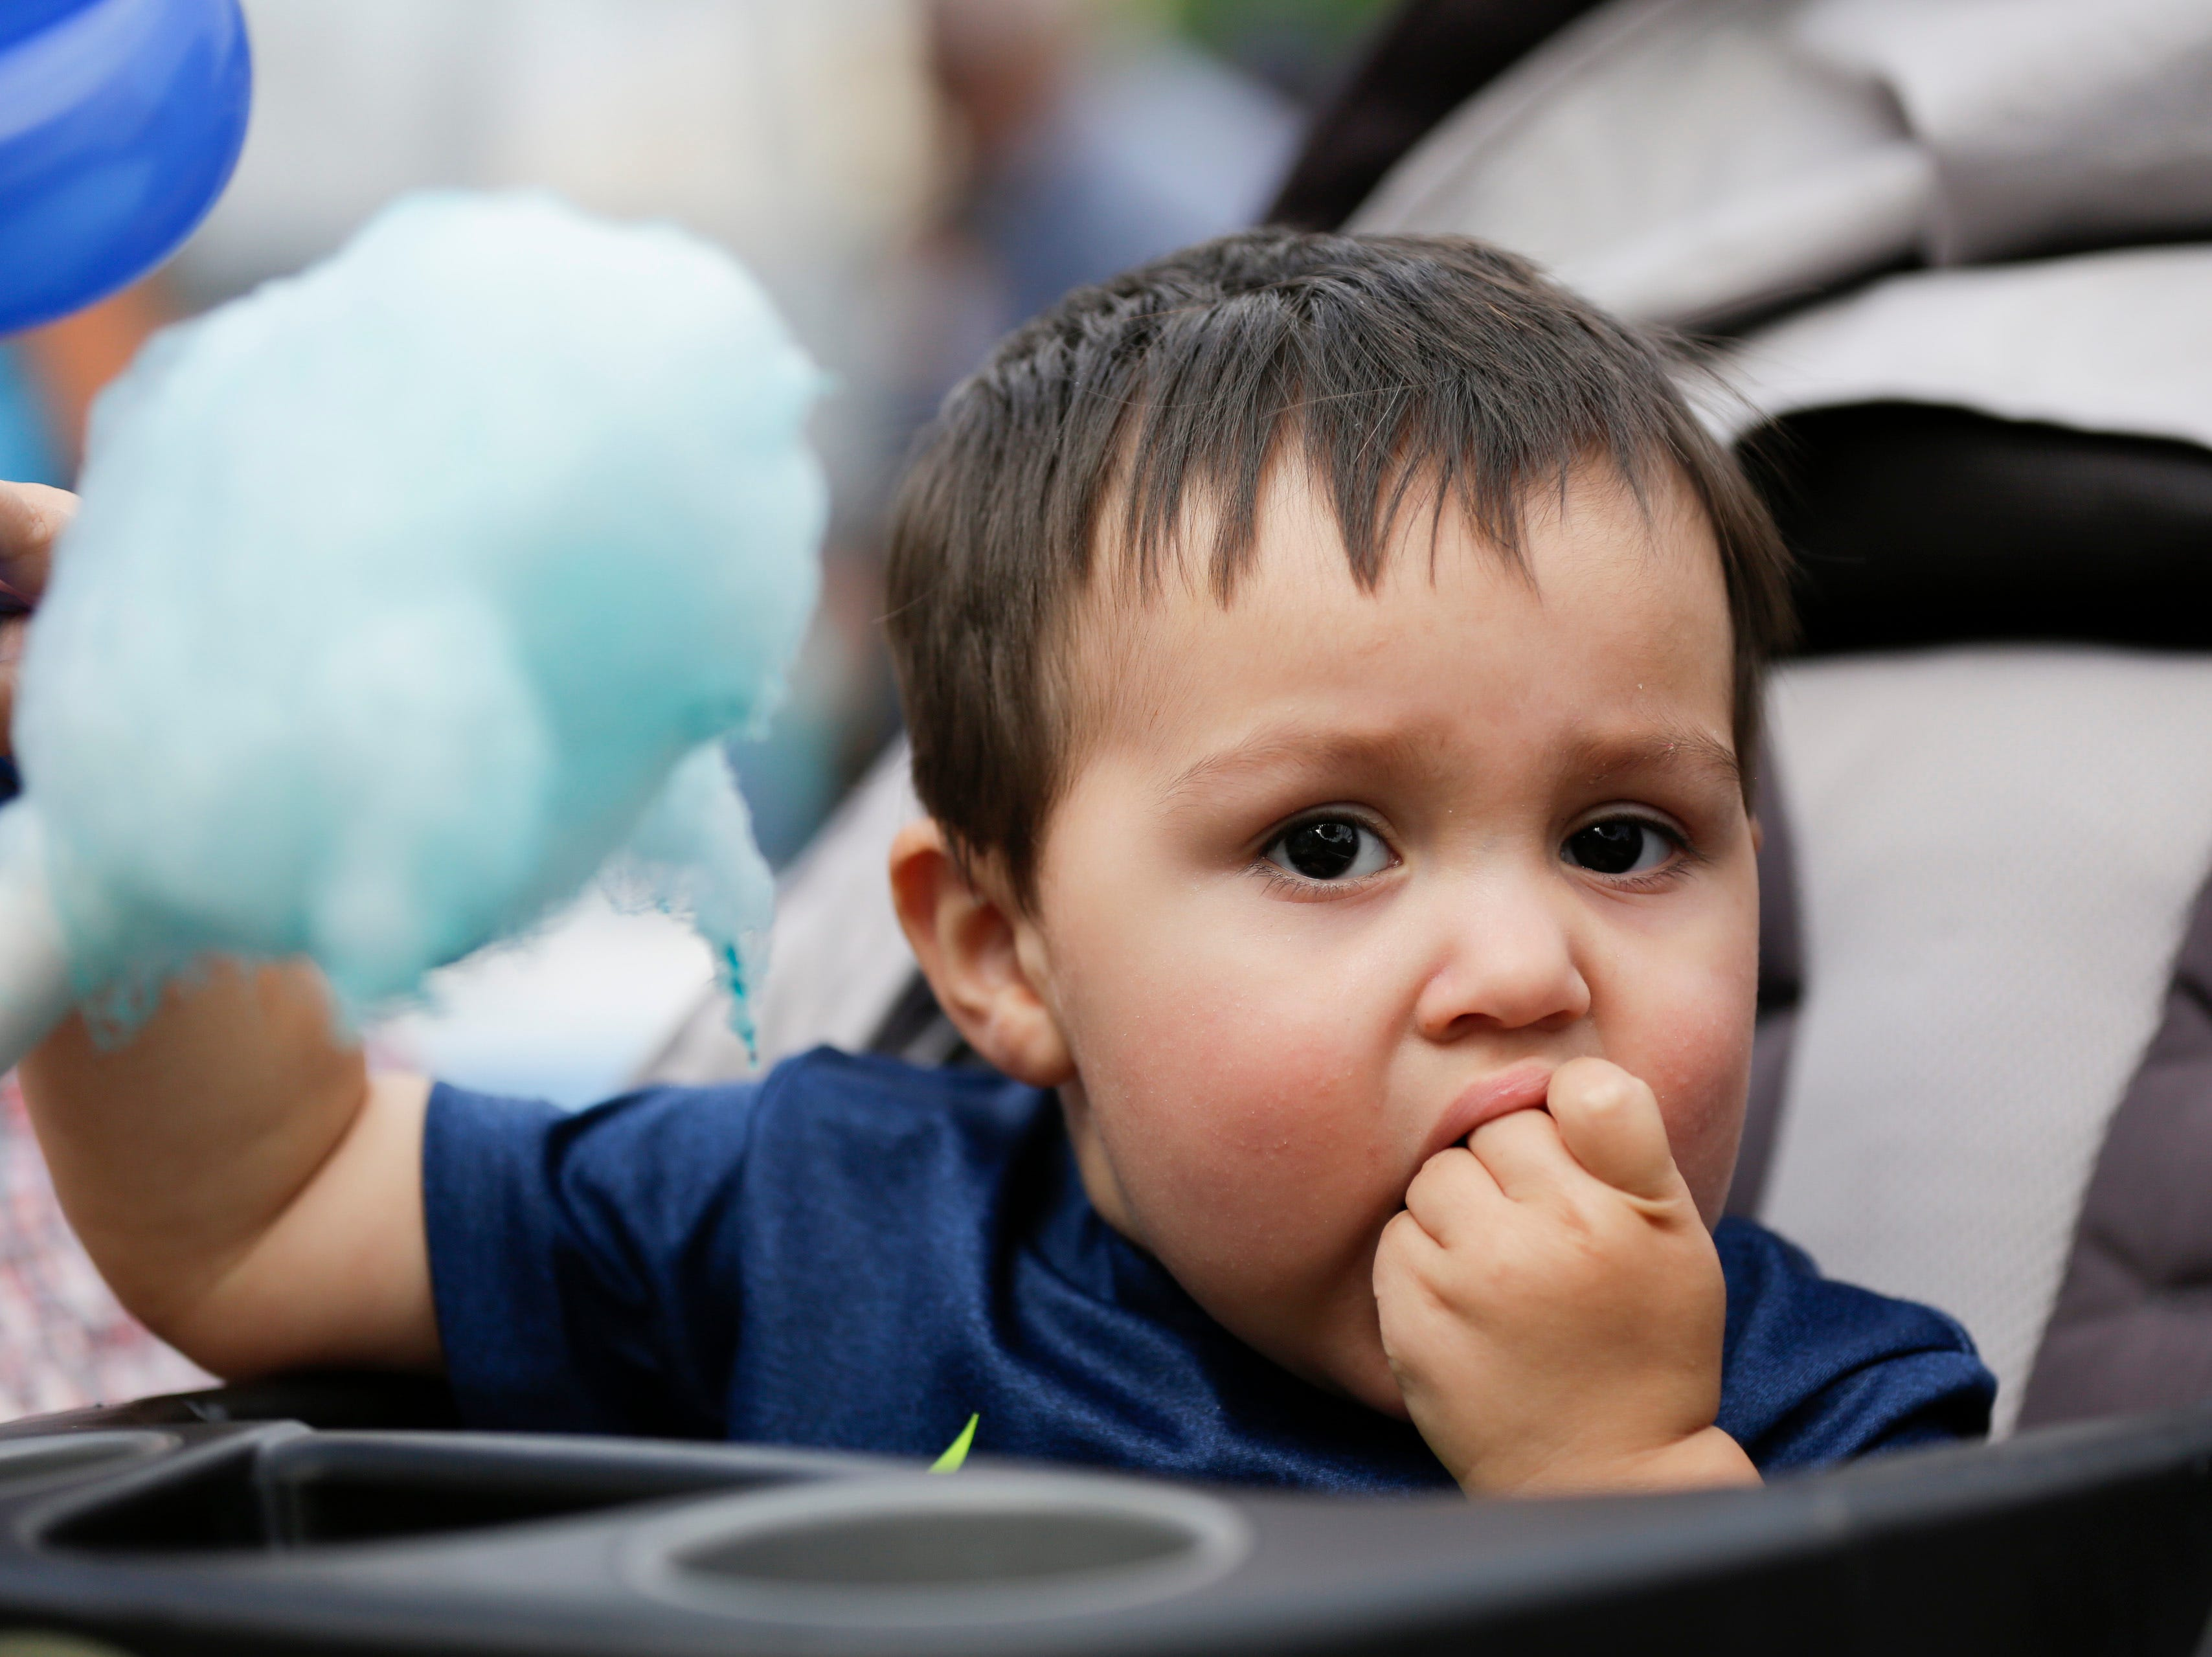 Sebastian Diaz, 1, eats cotton candy at the Wisconsin Rapids community picnic on First Avenue South and Johnson Street Wednesday, August 1, 2018.